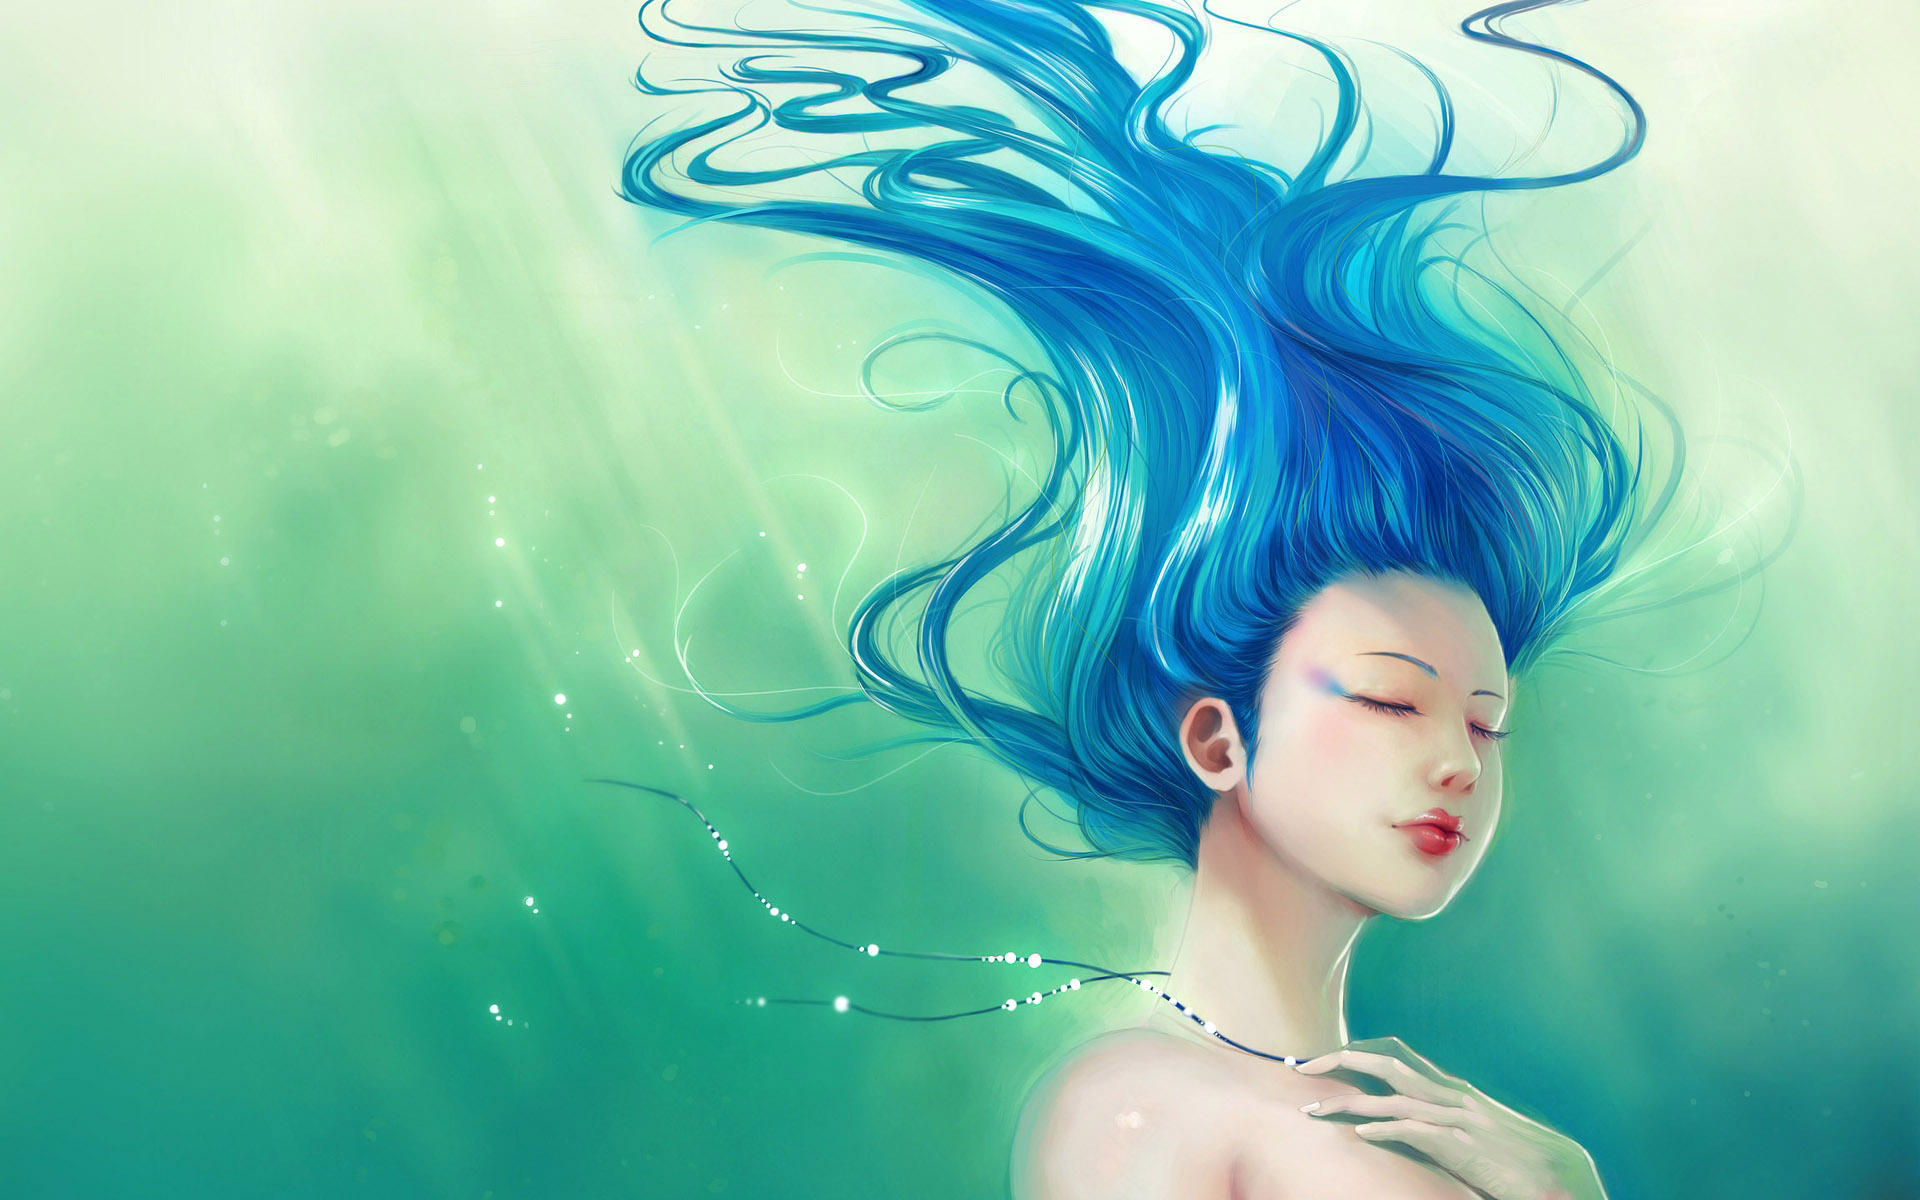 Image Lady With Blue Hair Wallpapers And Stock Photos